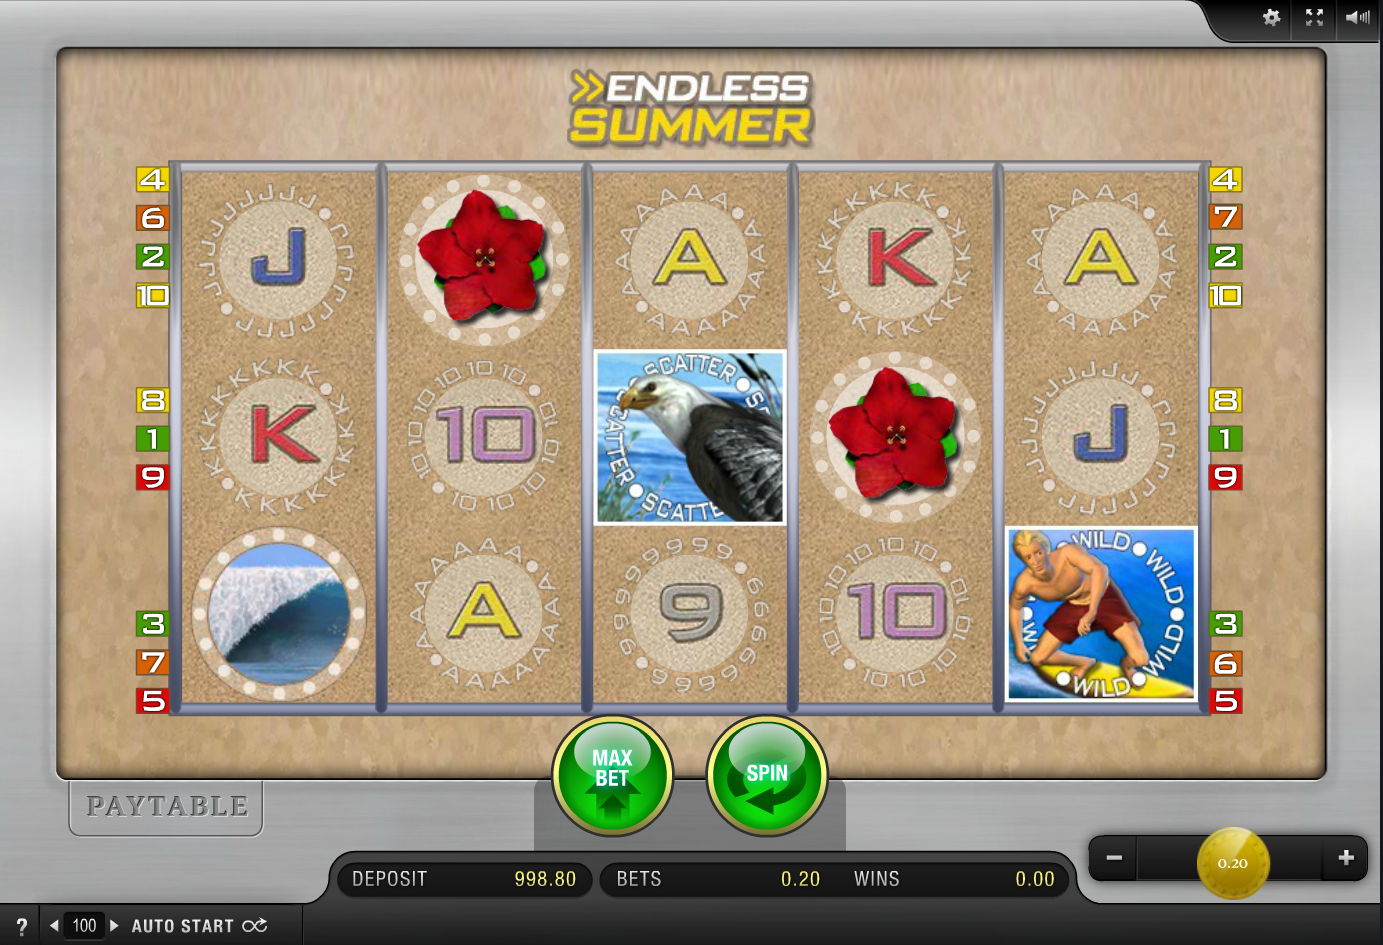 book of ra online casino echtgeld google ocean kostenlos downloaden